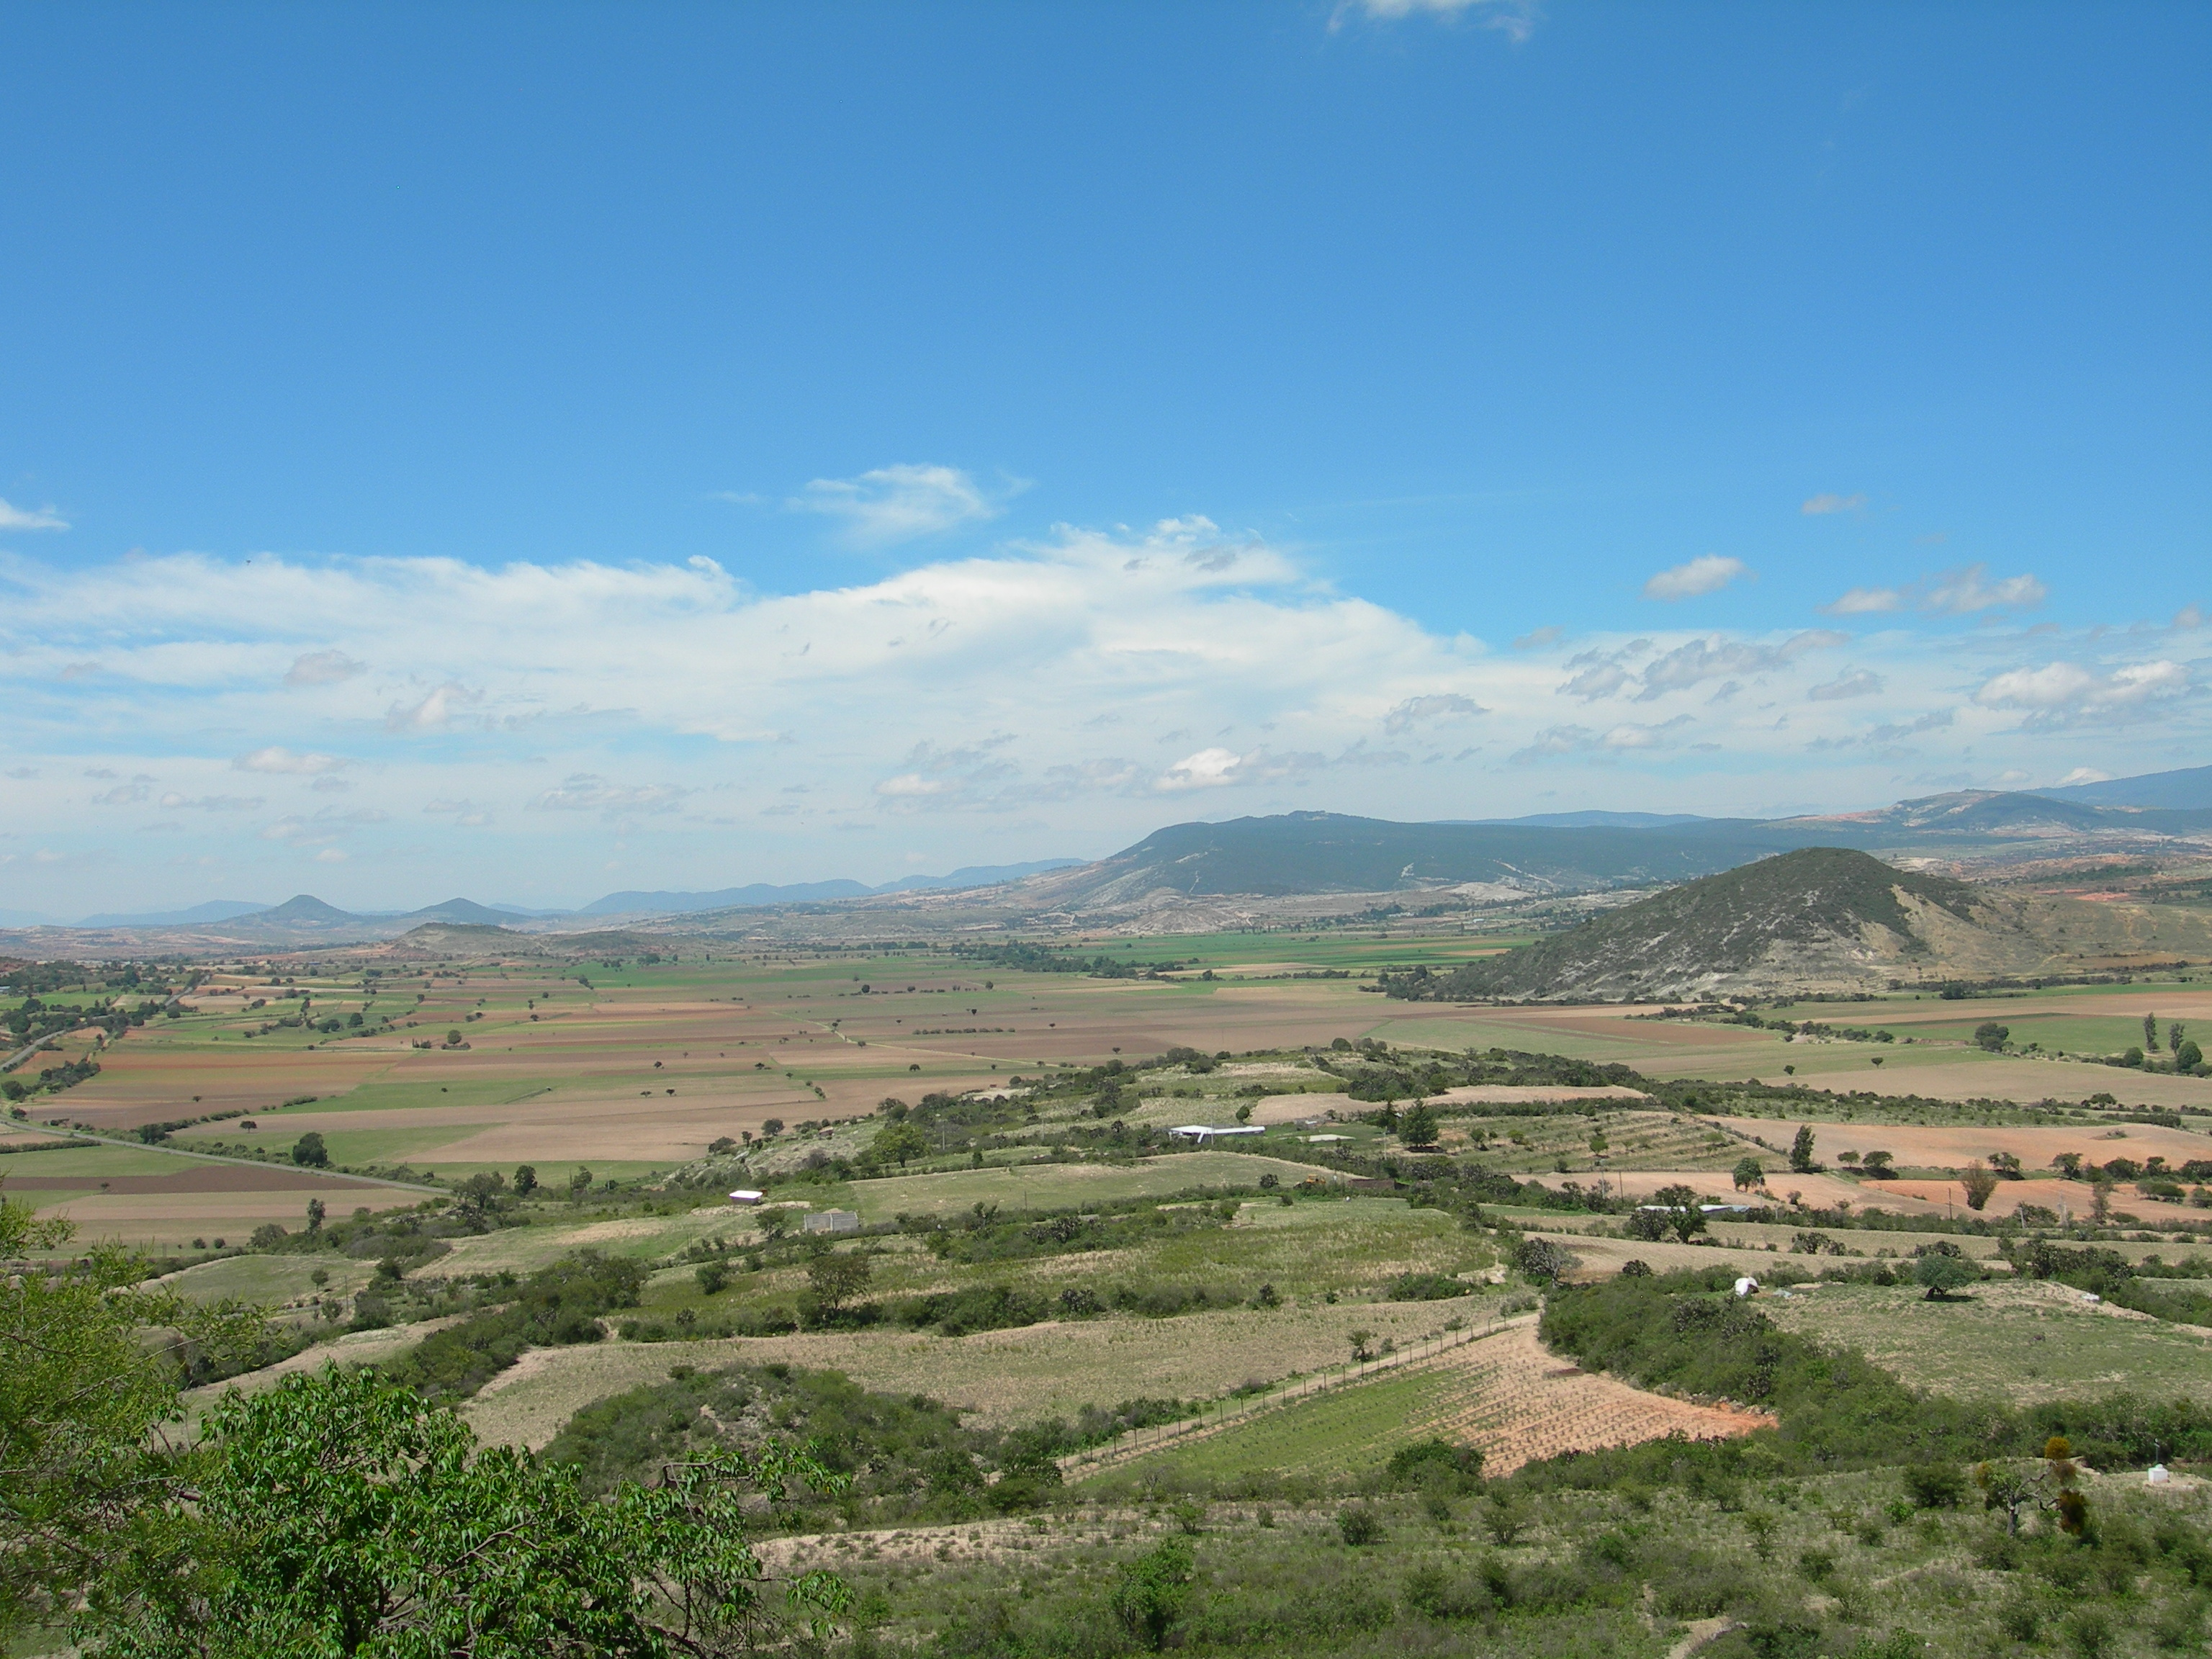 FIGURE 6. View of the southern Nochixtlan Valley, as seen looking south from the top of Yucuita. The twin hills above Magdalena Jaltepec (Añute) can be seen on the horizon near the left edge of the photo. June 2007. Photo by Byron Hamann.